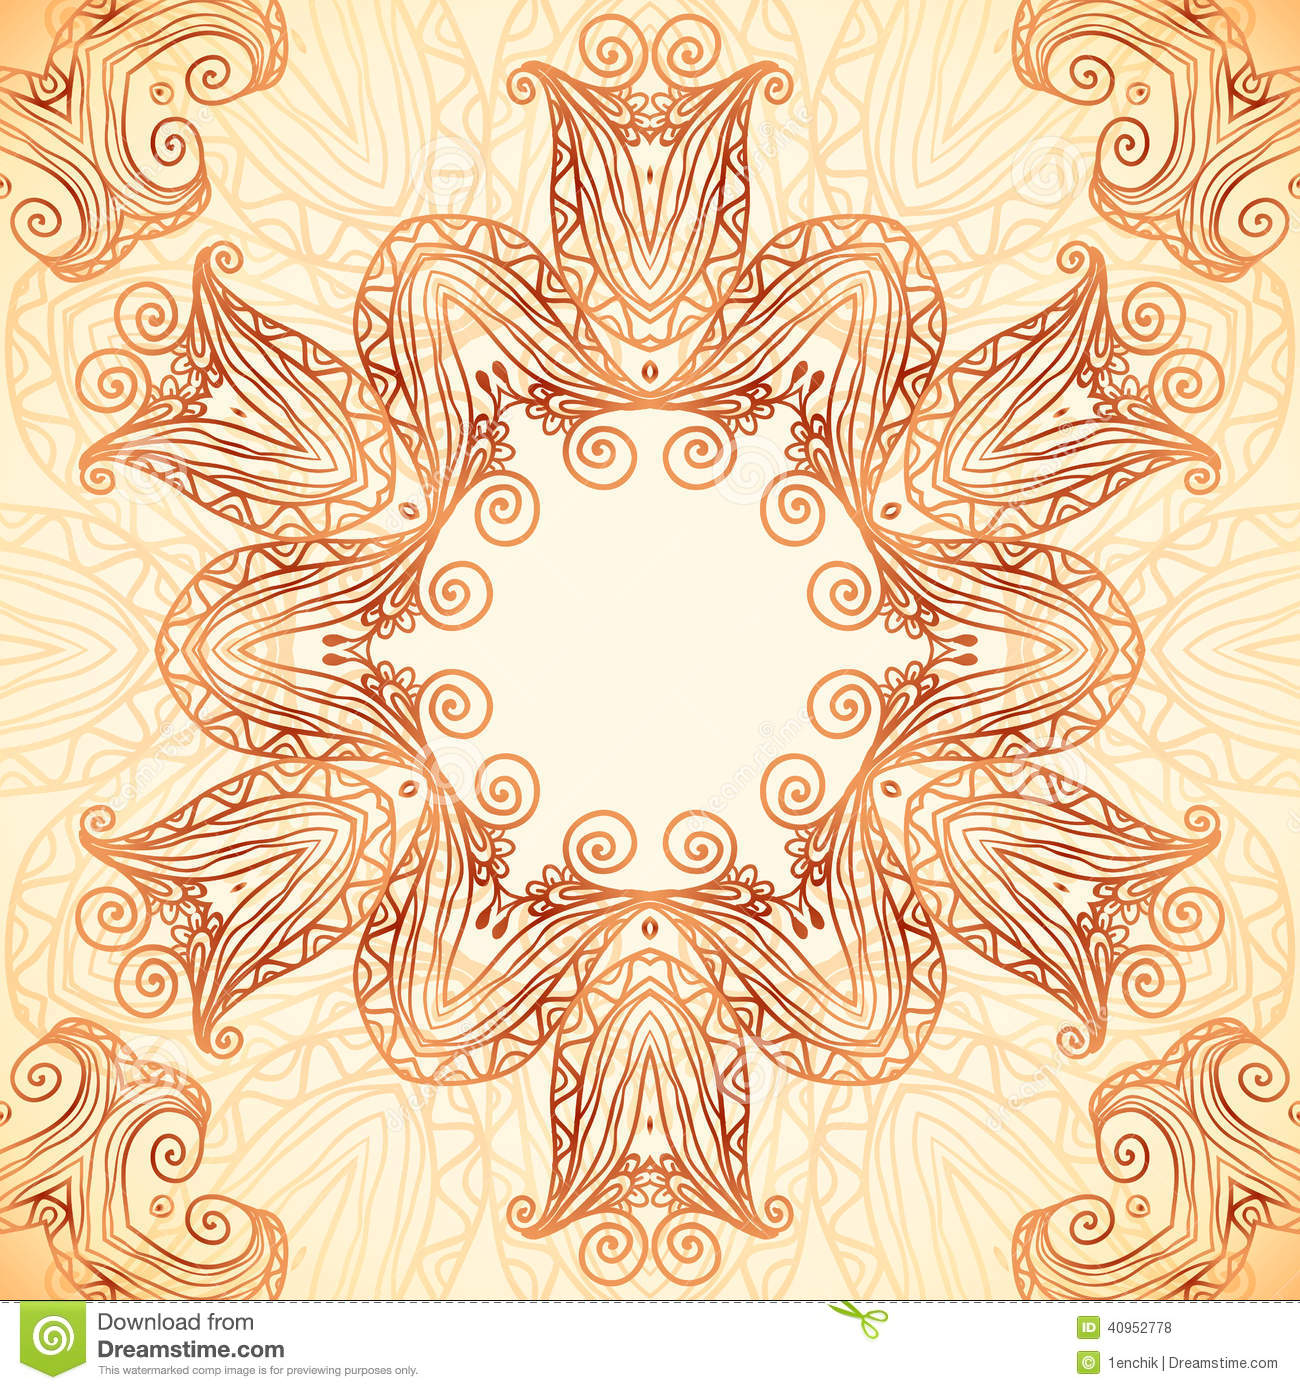 Ornate vintage vector background in mehndi style royalty free stock - Royalty Free Vector Download Ornate Vintage Template In Indian Mehndi Style Stock